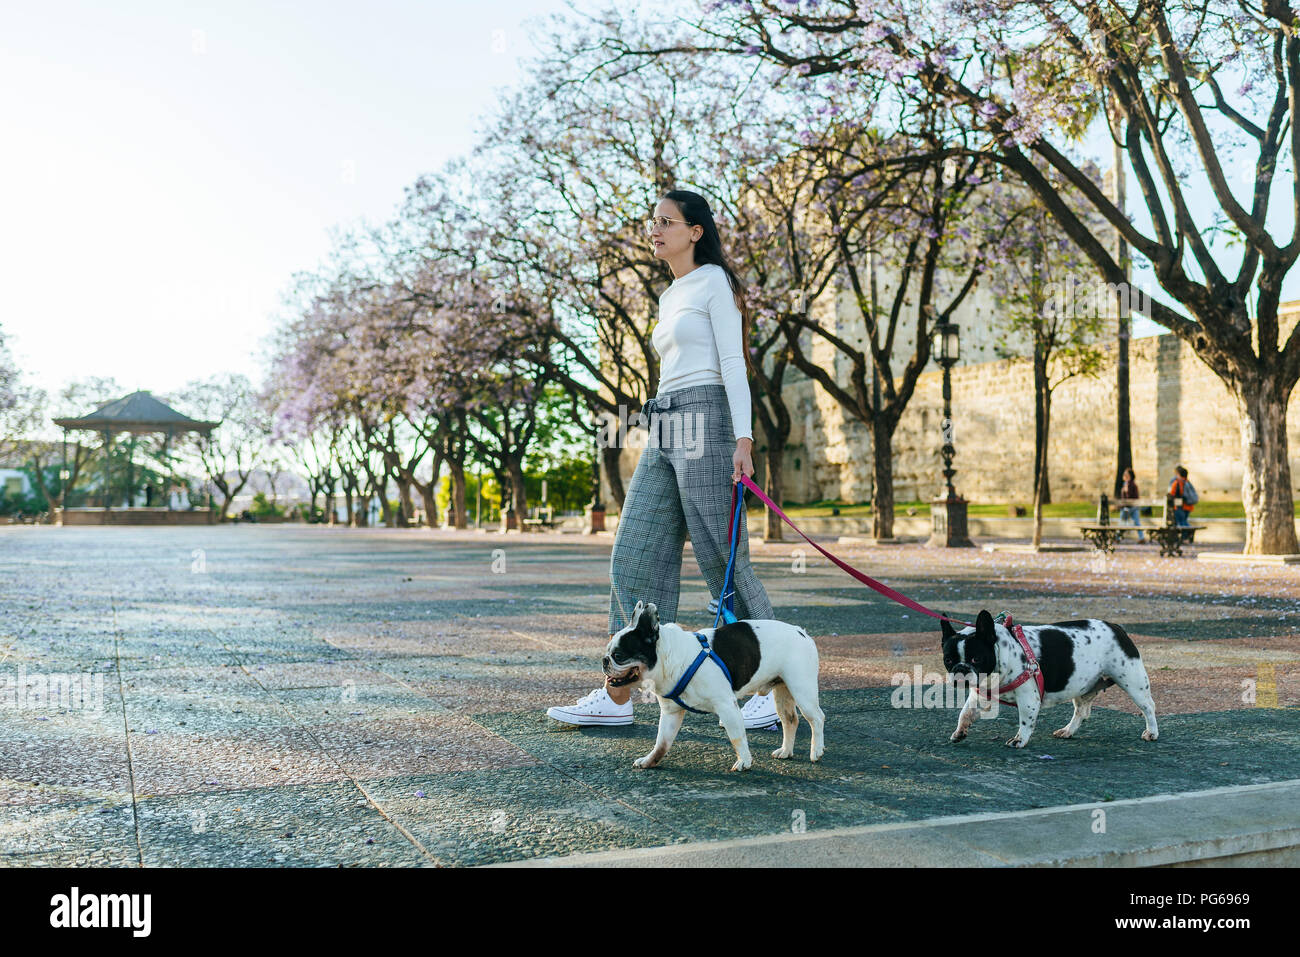 Spain, Andalusia, Jerez de la Frontera, Woman walking with two dogs on square Stock Photo